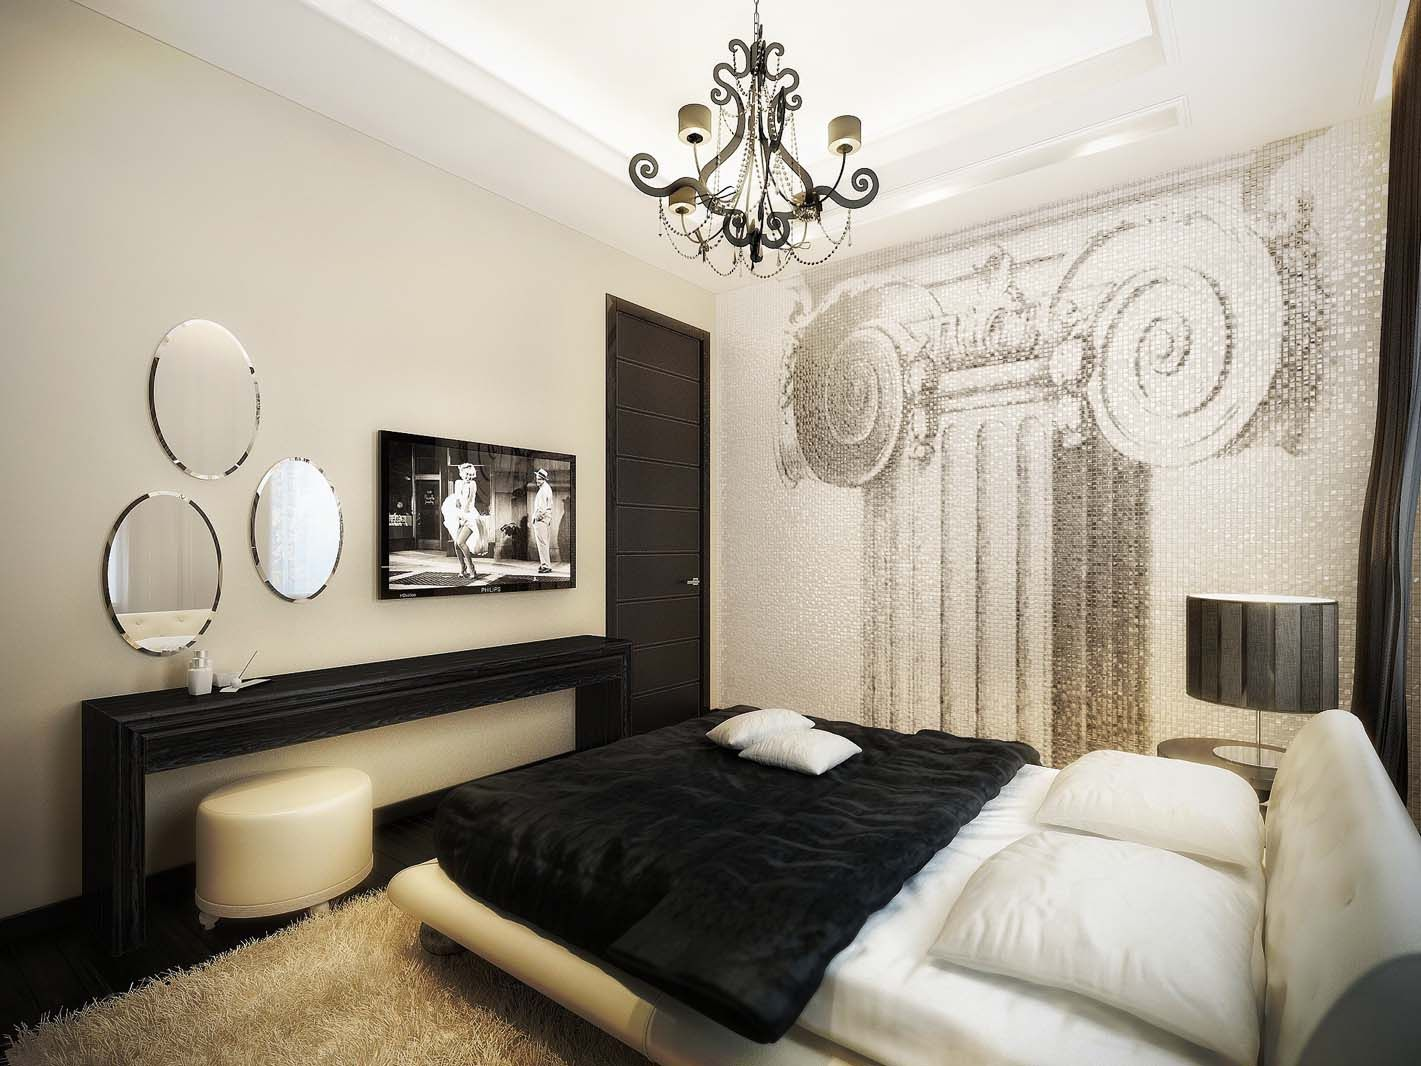 luxury vintage apartment master bedroom decor homedecor homedesign - Decoration For Bedrooms